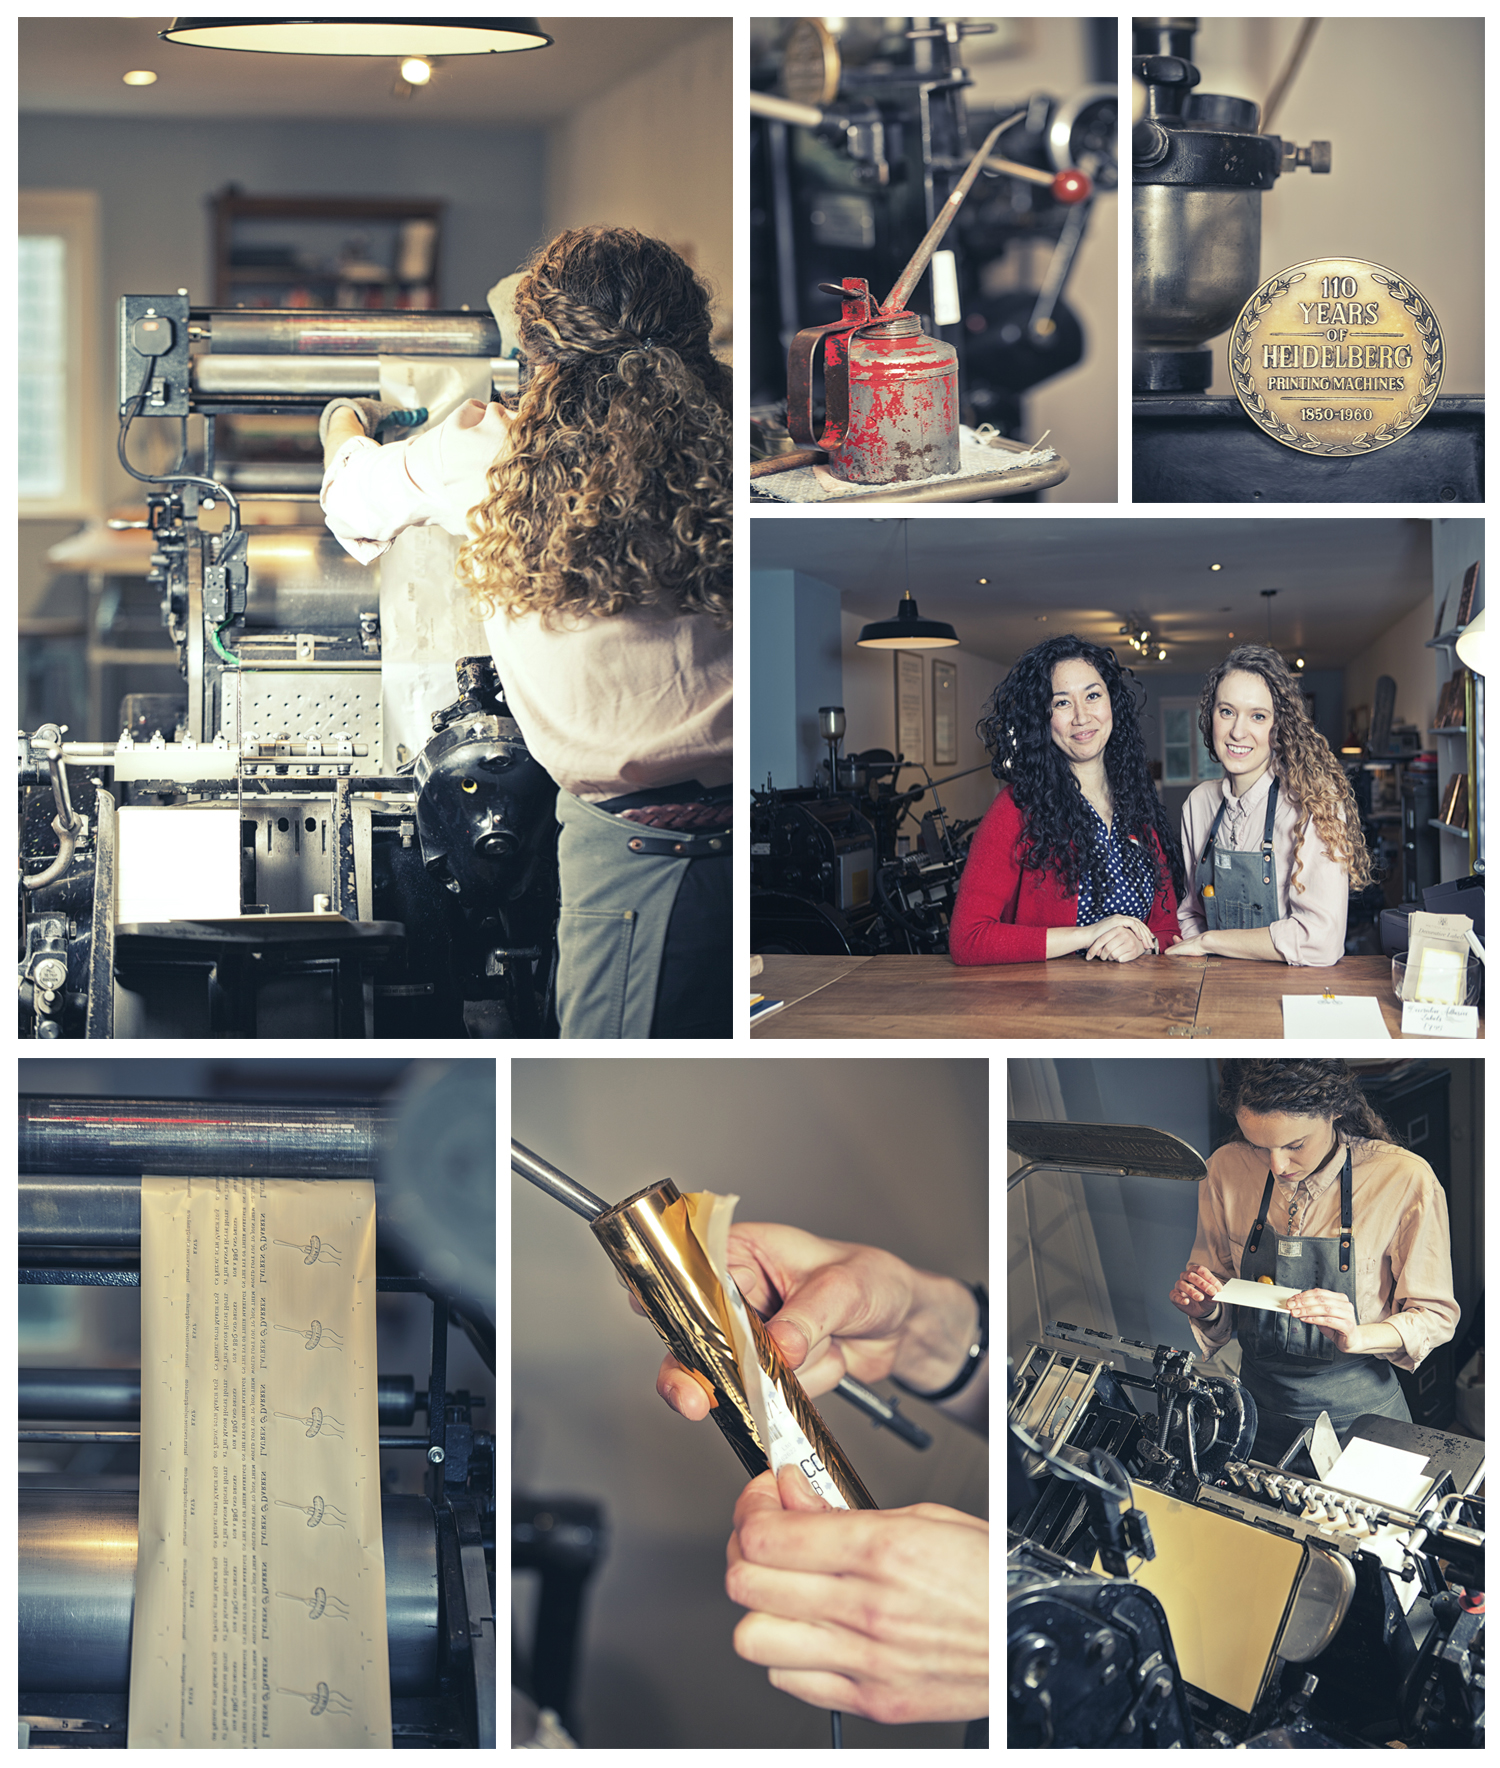 Zoe and Athena @ Meticulous Ink, fine stationers and letterpress, Walcott St, Bath, UK